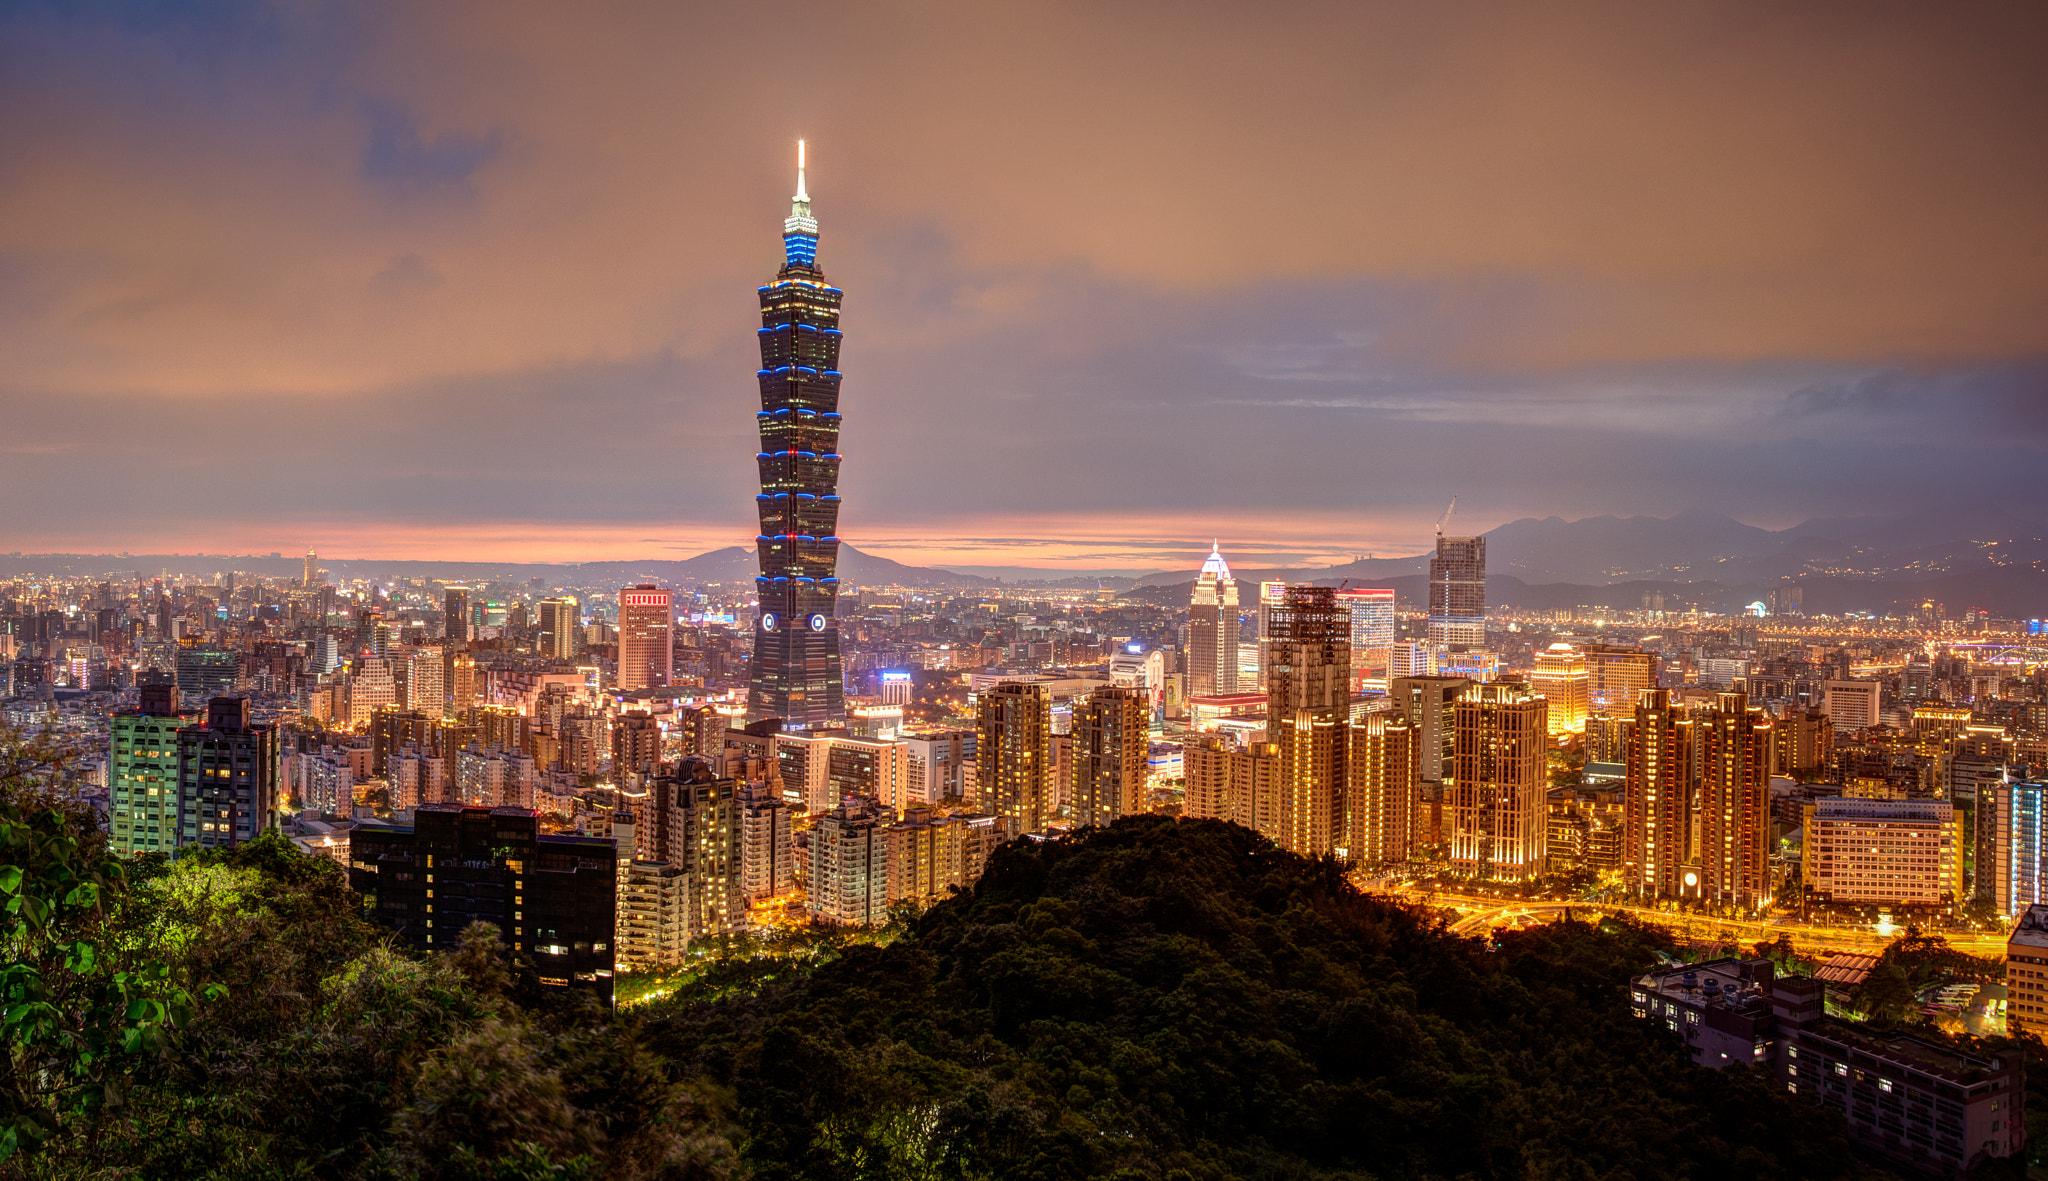 Photograph Taipei Skyline from Elephant Mountain by Dave Wilson on 500px